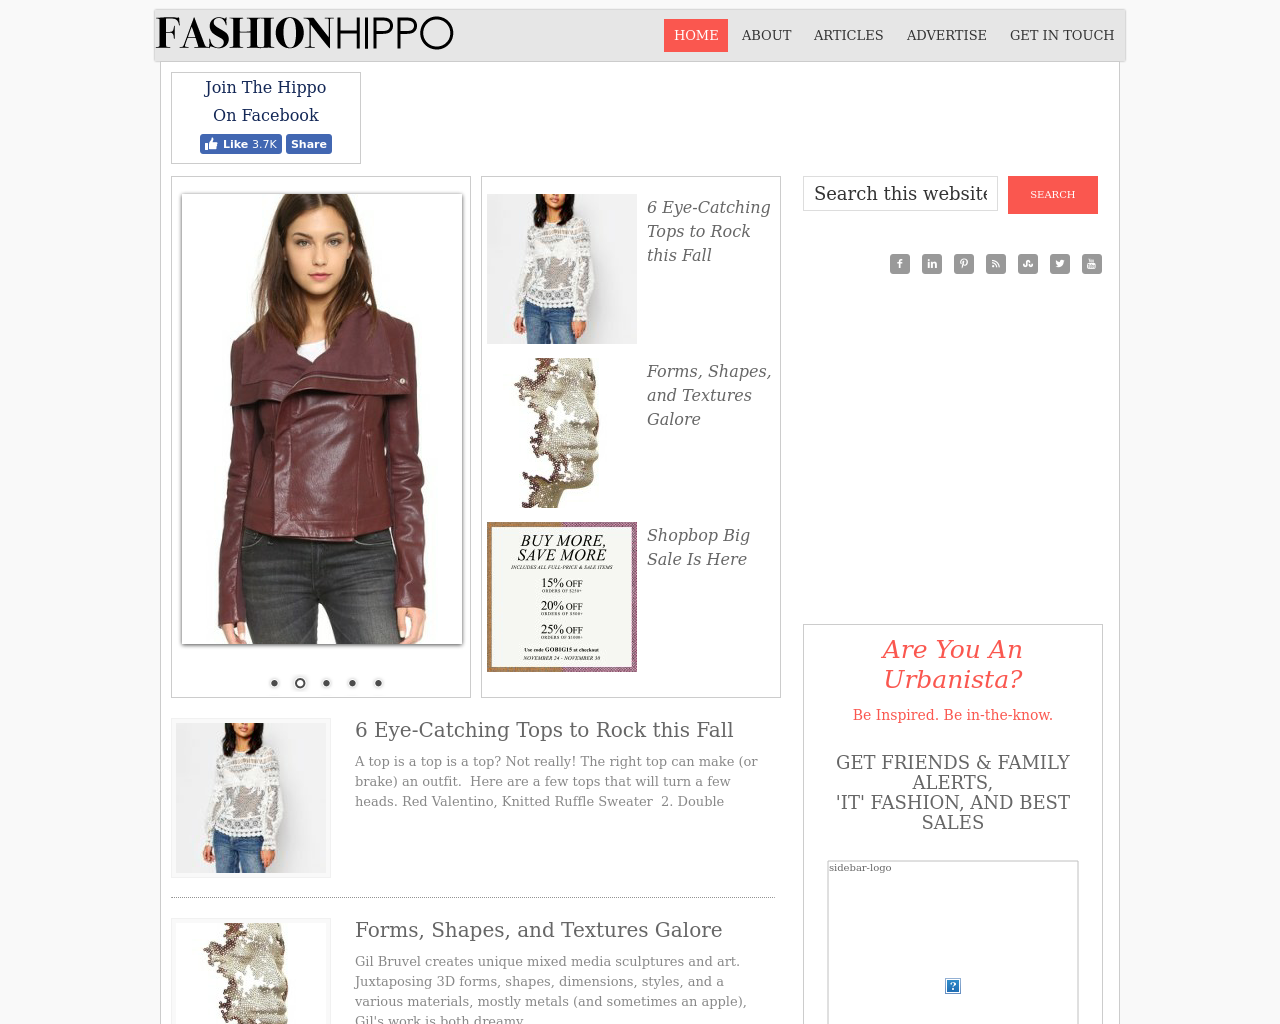 Fashion-Hippo-Advertising-Reviews-Pricing